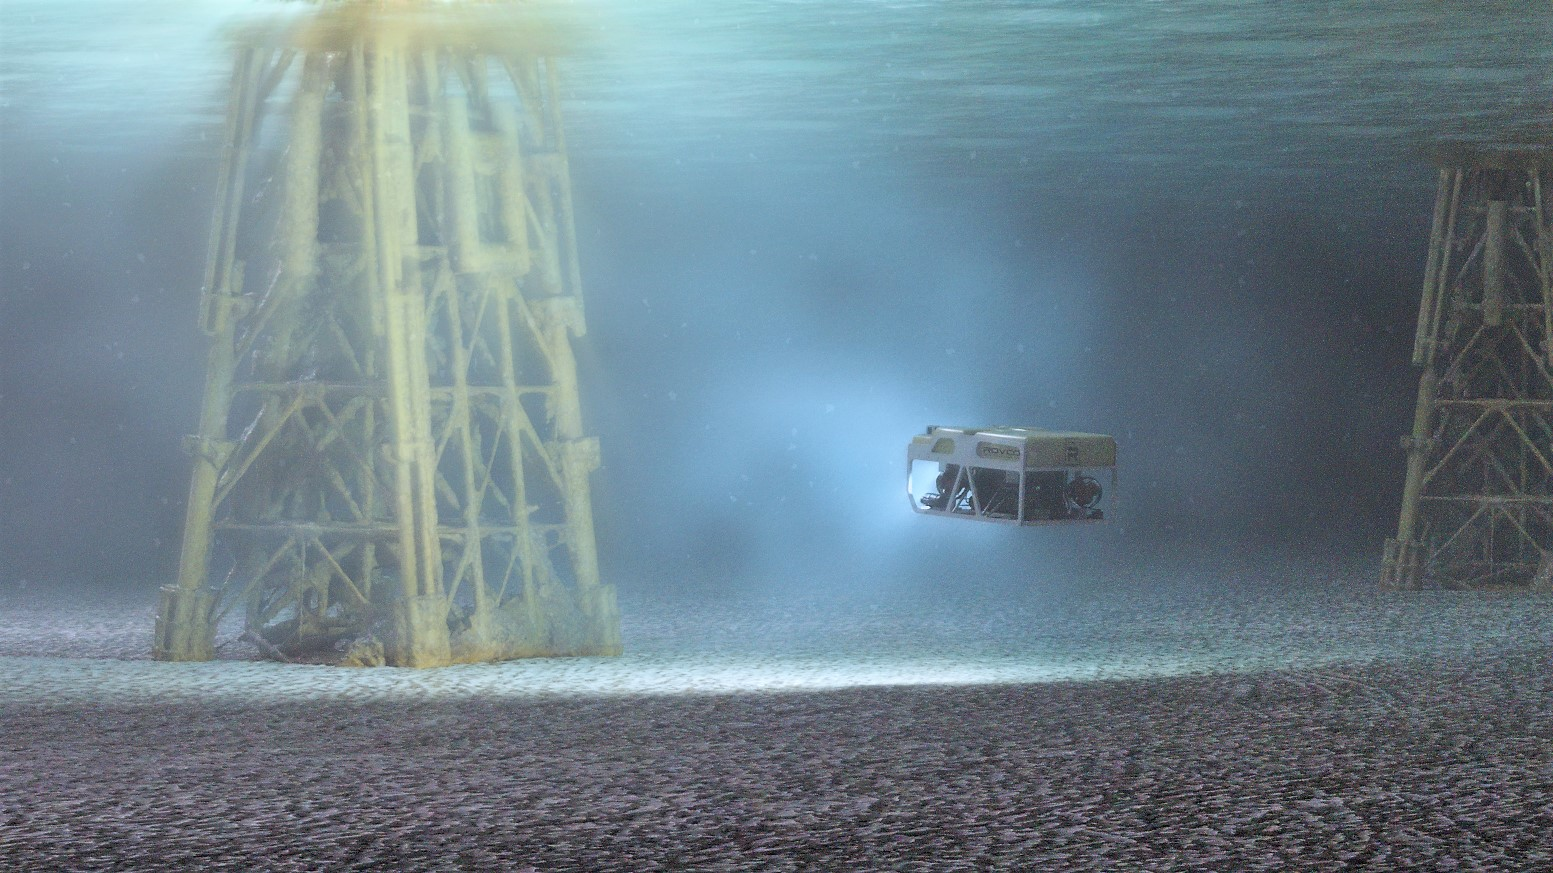 Rovco 3D reconstruction of a subsea jacket structure